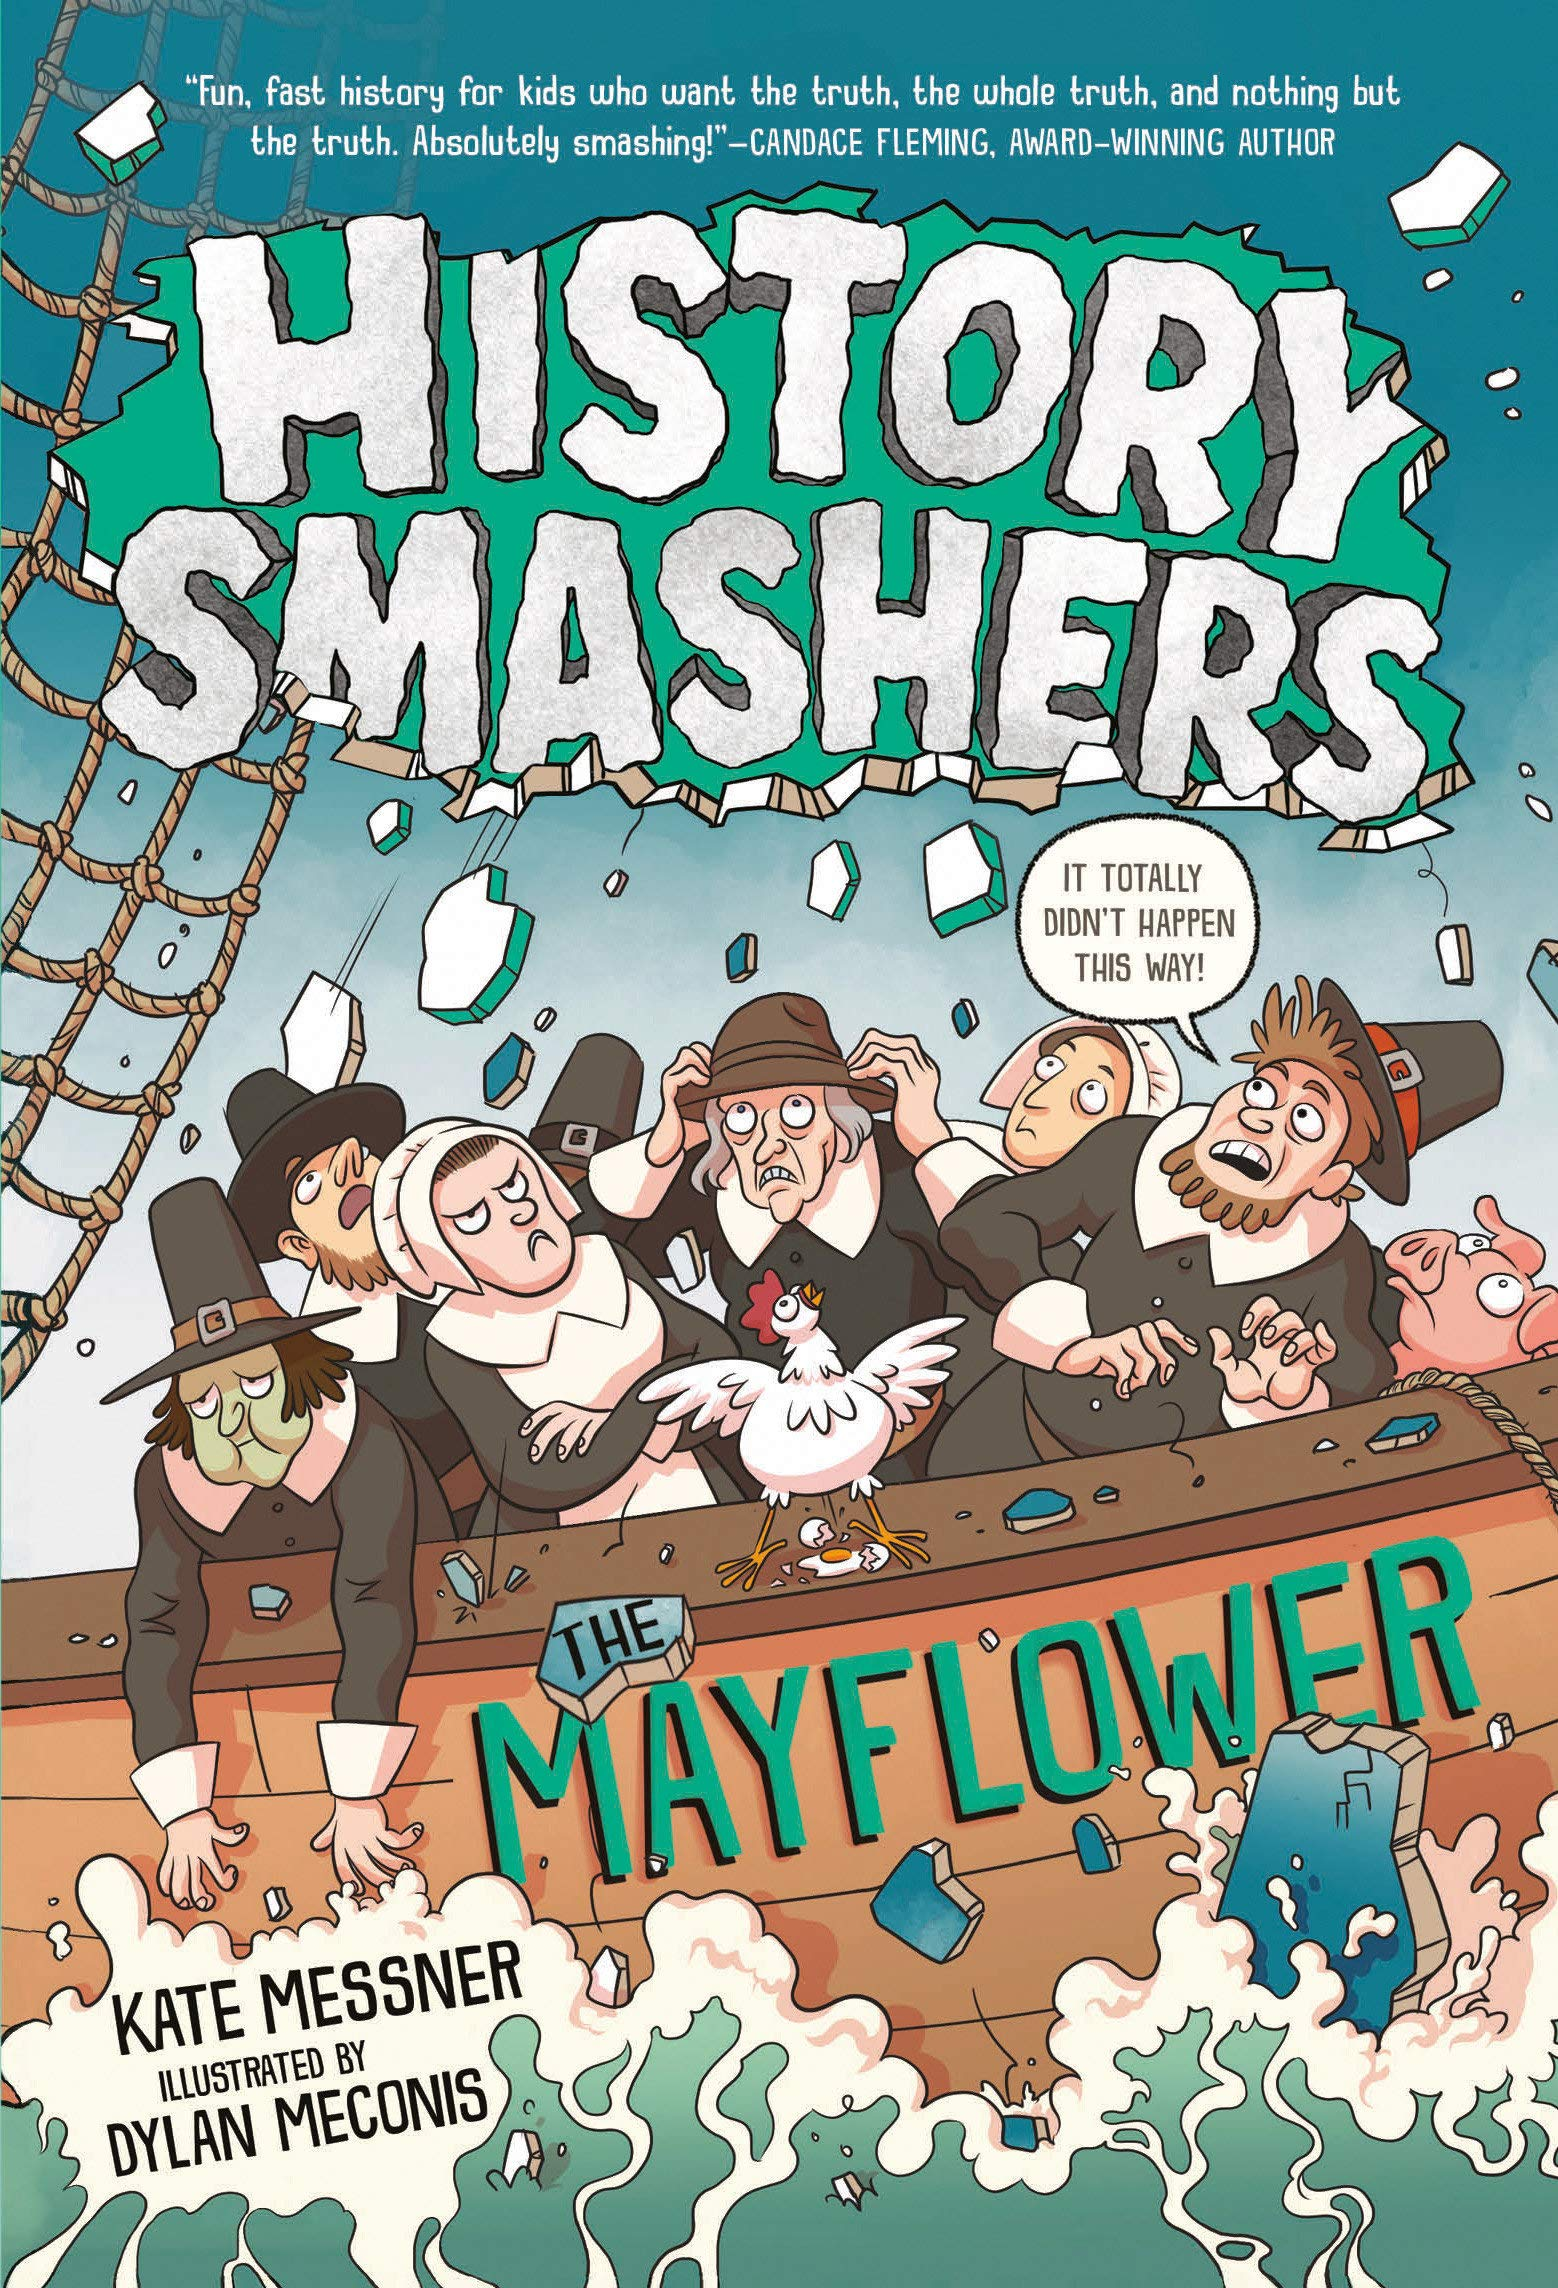 History Smashers: The Mayflower: Messner, Kate, Meconis, Dylan:  9780593120316: Amazon.com: Books